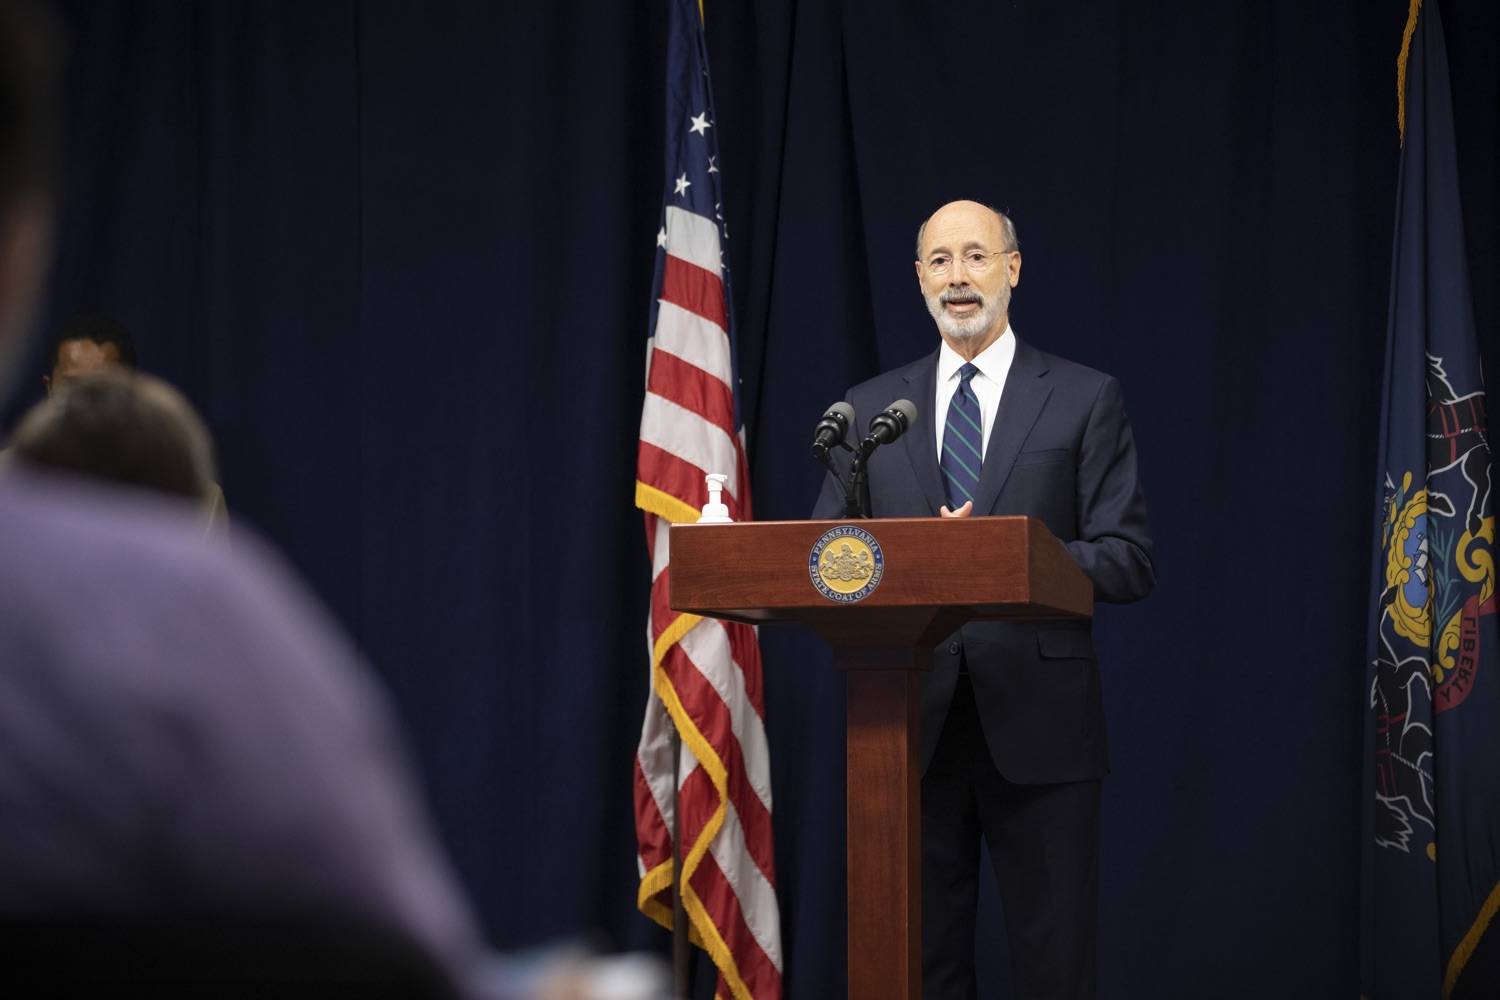 """<a href=""""https://filesource.wostreaming.net/commonwealthofpa/photo/18239_gov_recMarijuana_dz_017.jpg"""" target=""""_blank"""">⇣Download Photo<br></a>Pennsylvania Governor Tom Wolf speaking with the press. Governor Tom Wolf and Lt. Governor John Fetterman today called on the legislature to take up the legalization of adult-use cannabis to help with the states economic recovery amid COVID-19. Legalization will also create more outlets for important restorative justice programs in the commonwealth.  Harrisburg, PA  Sept. 3, 2020"""